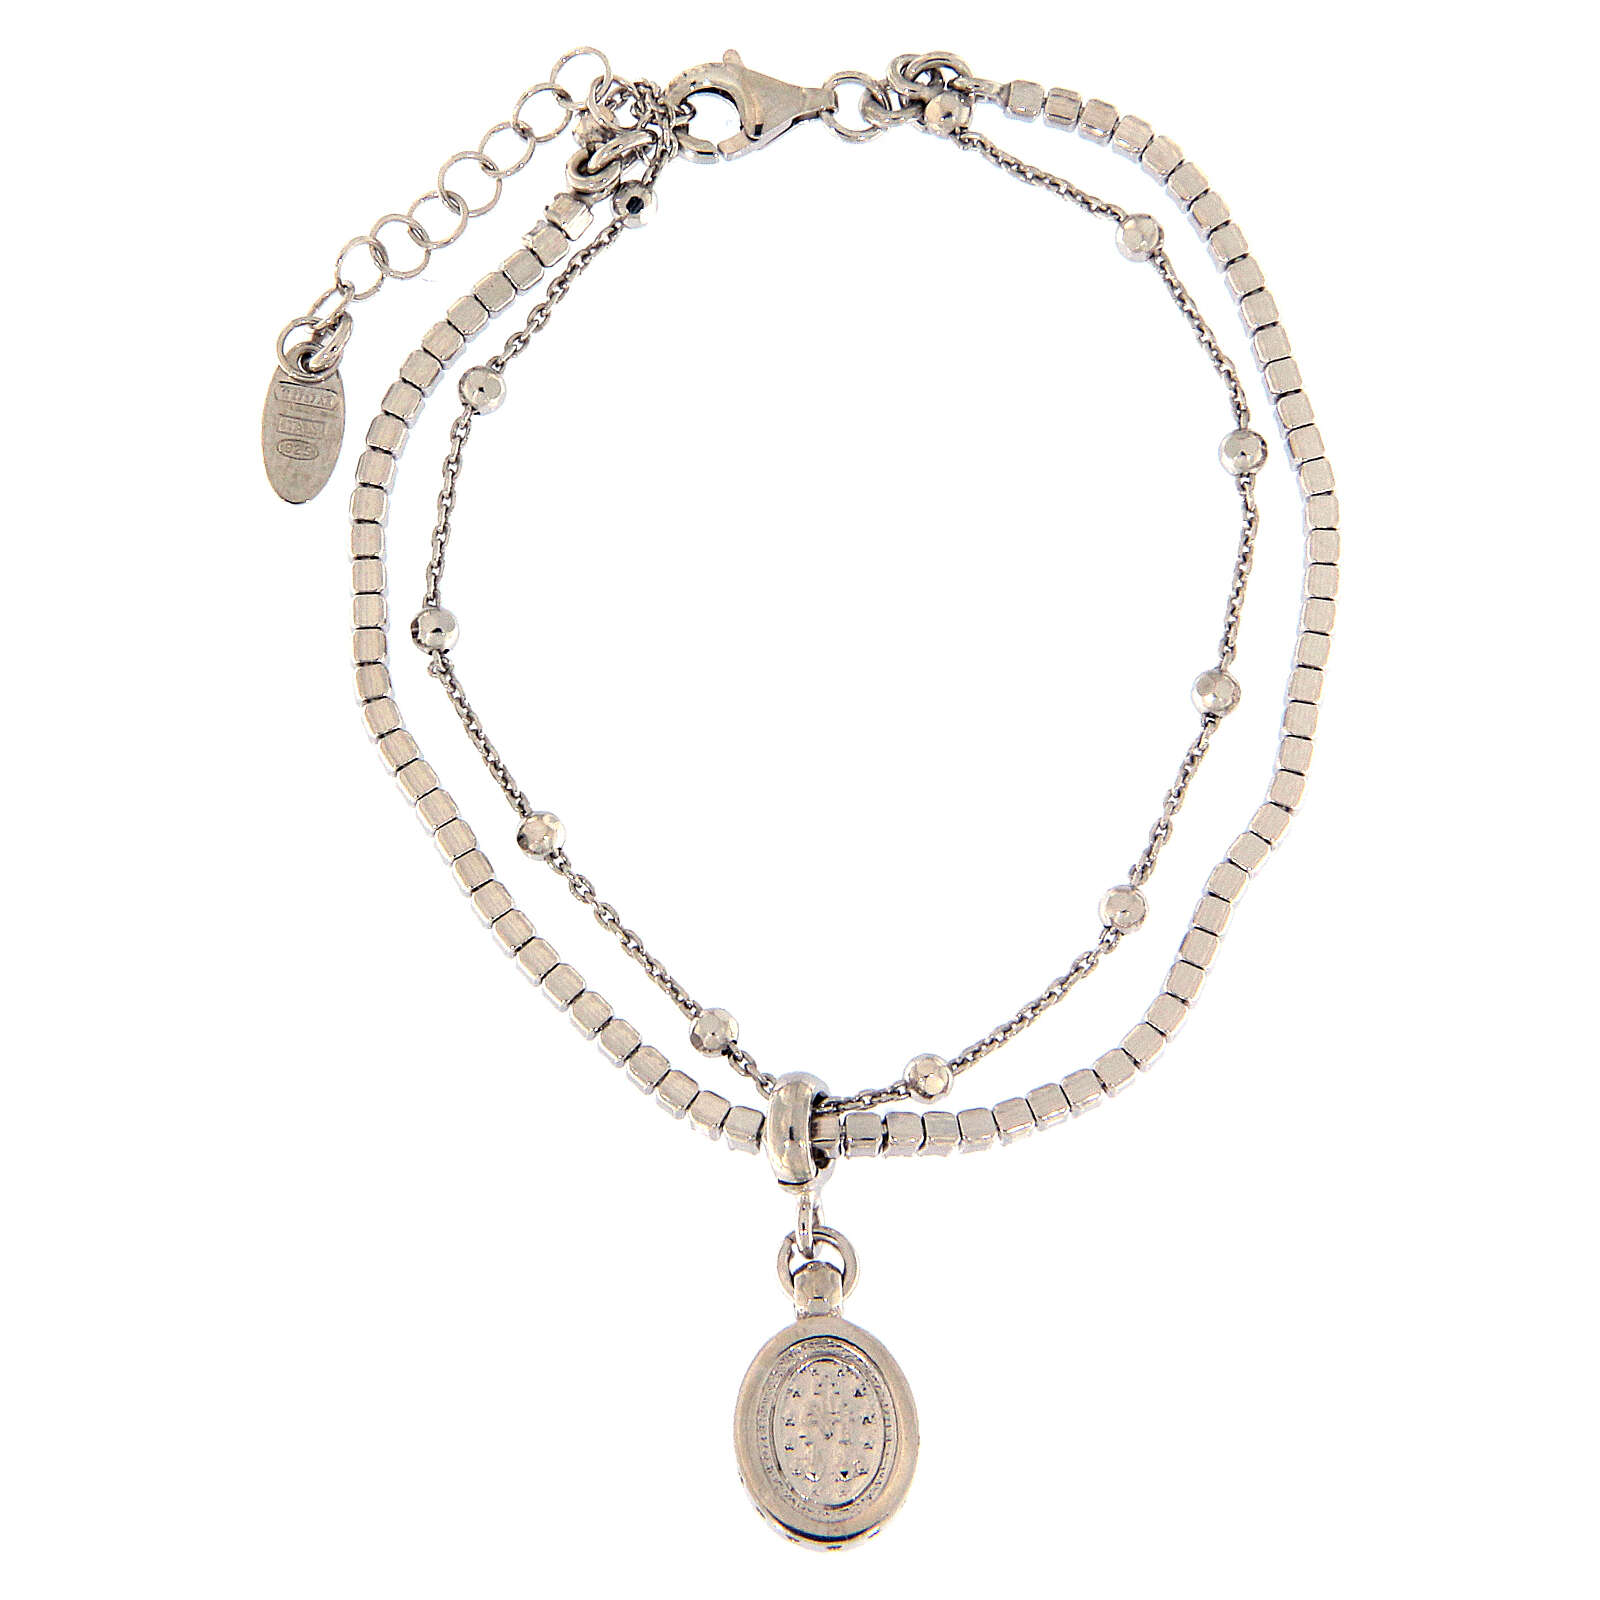 AMEN bracelet in 925 silver rhodium with white Mary medal 4